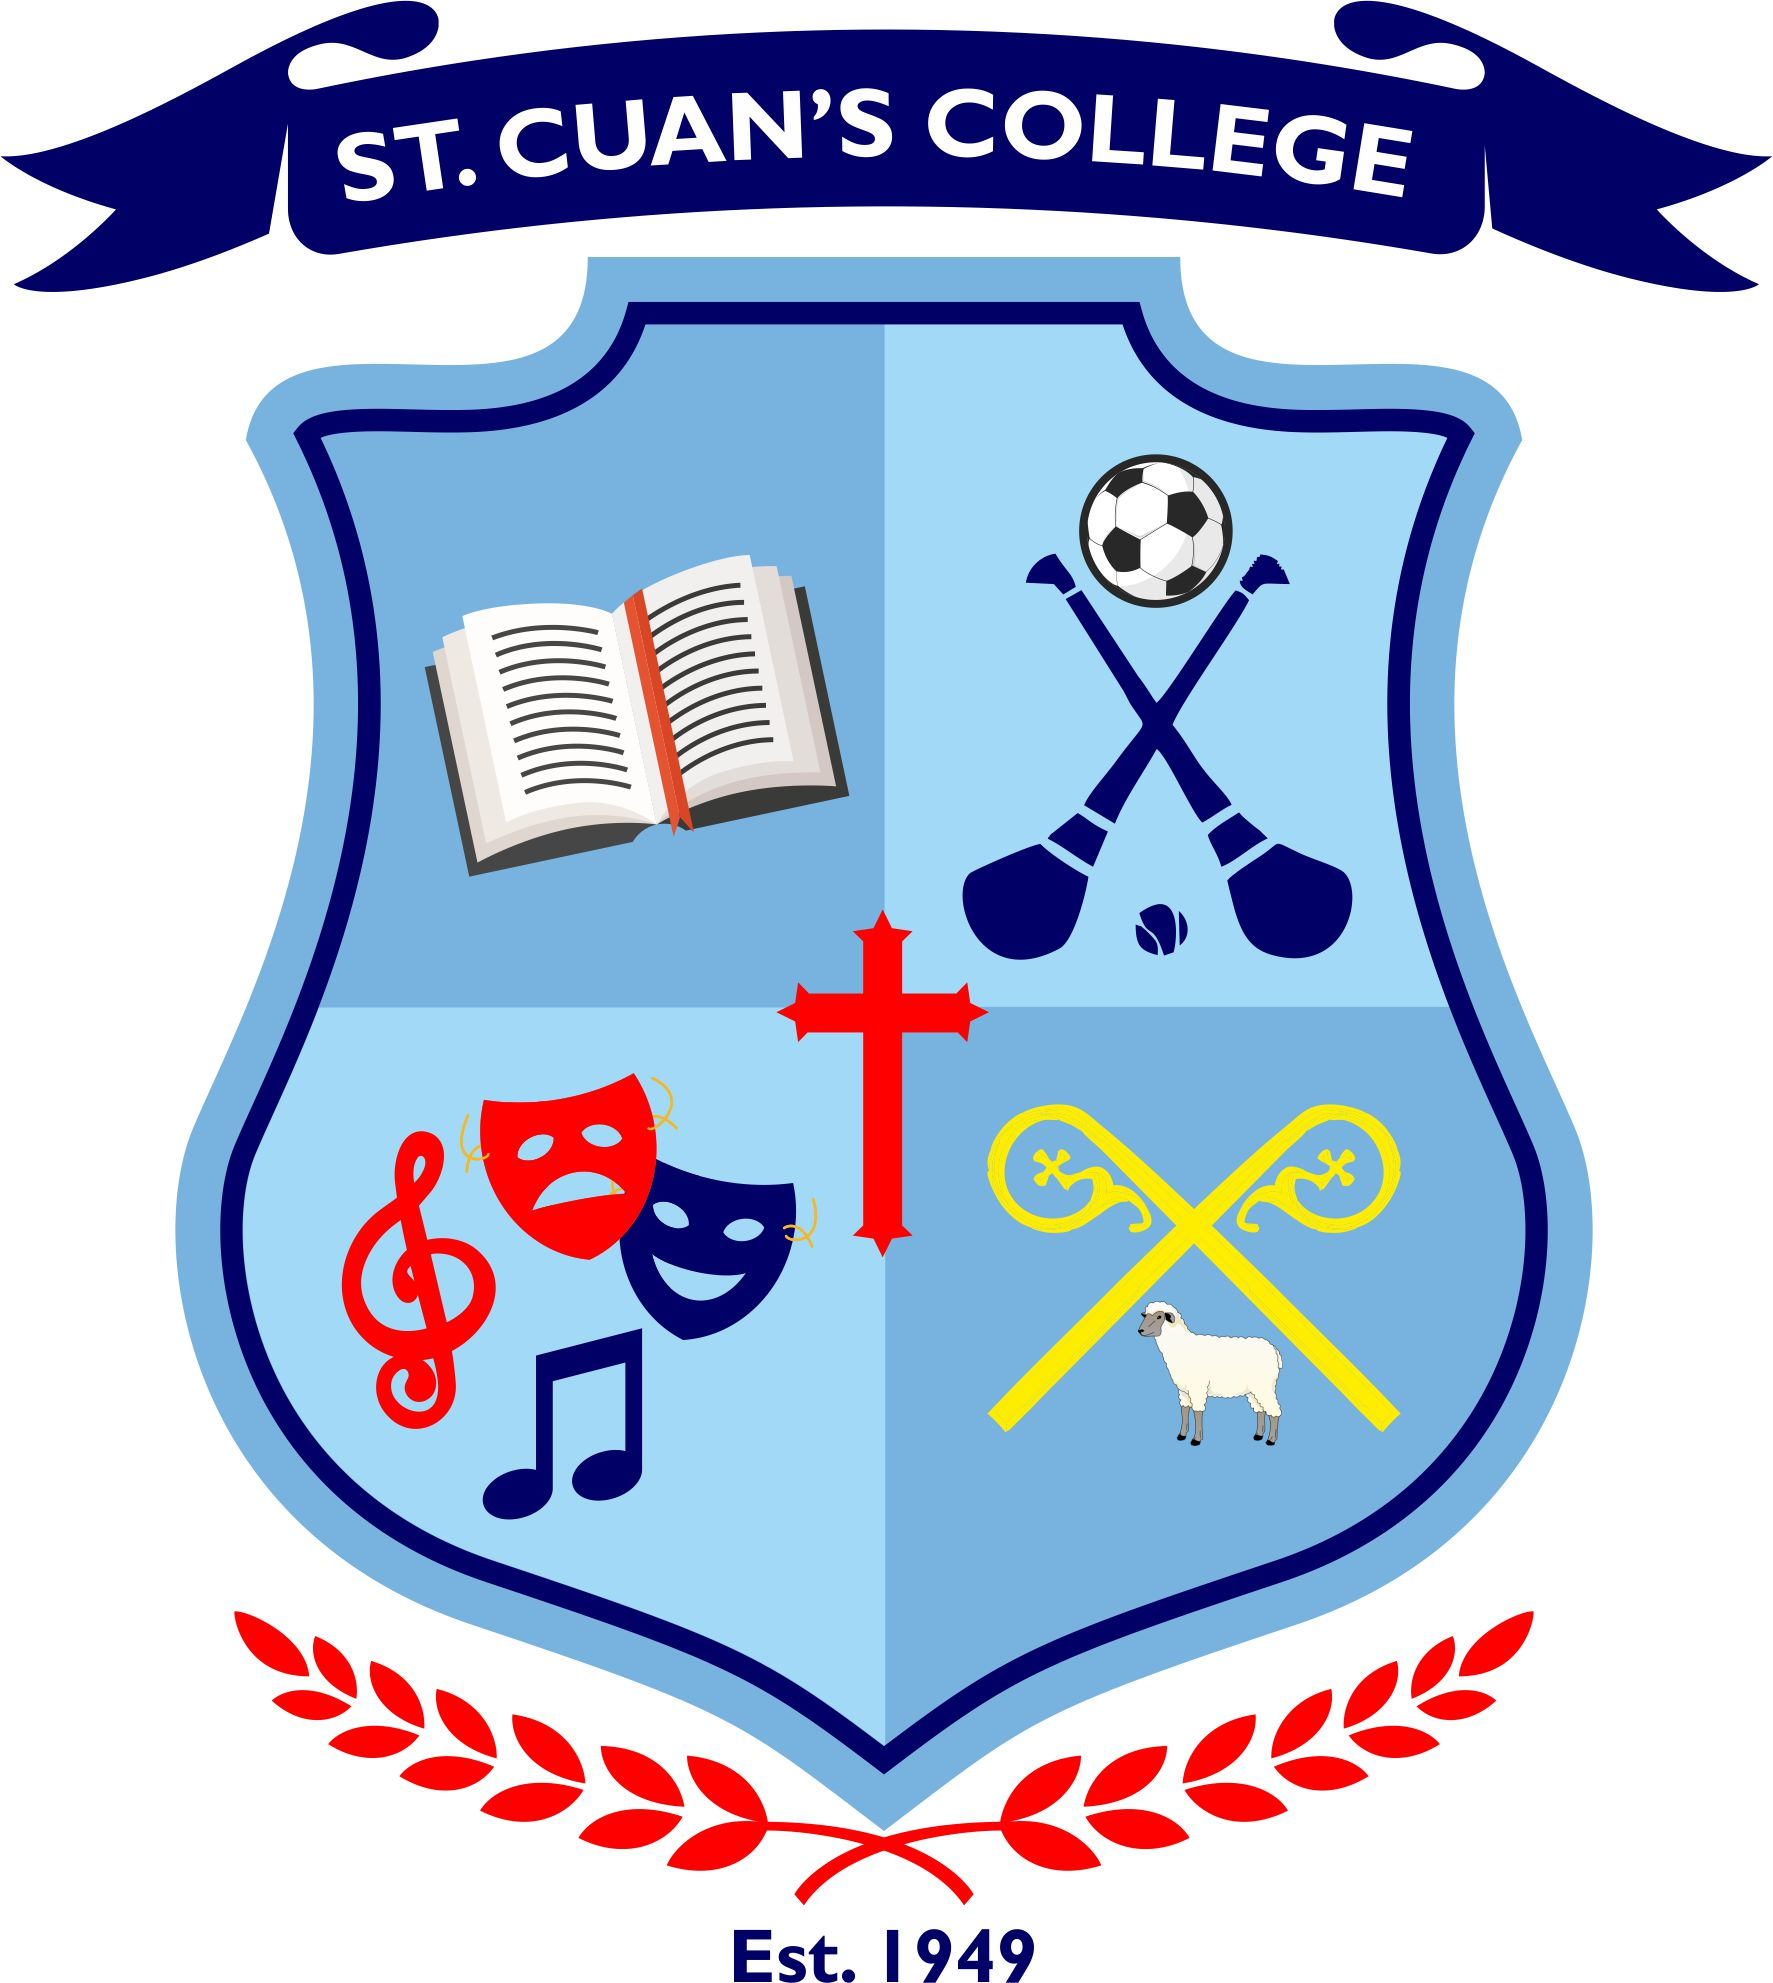 St. Cuan's College